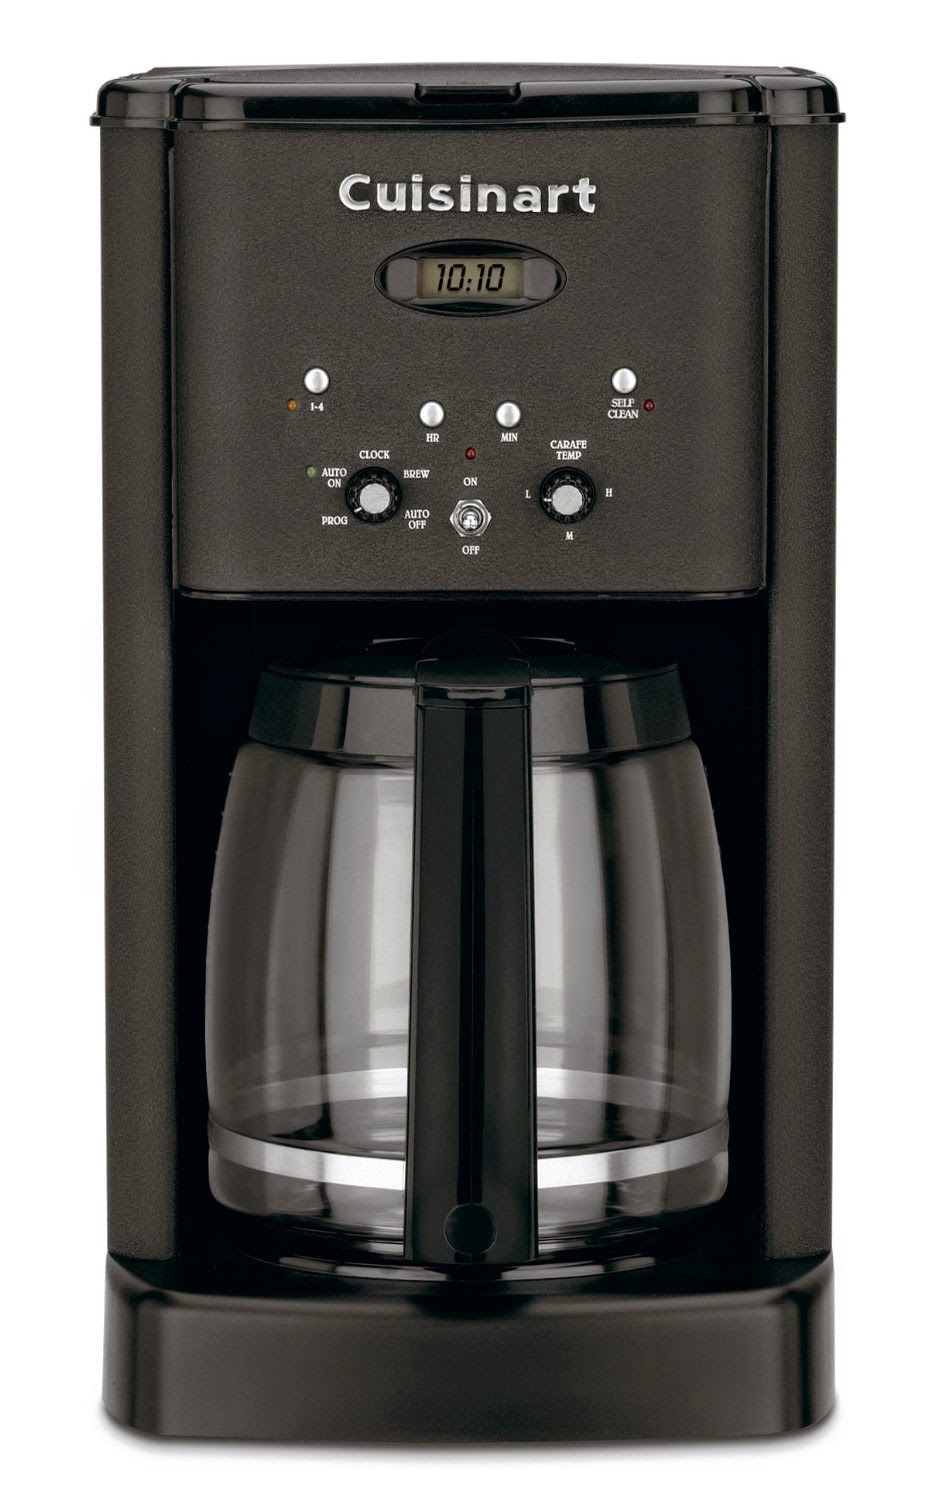 Image Result For How To Set The Clock On A Cuisinart Coffee Maker